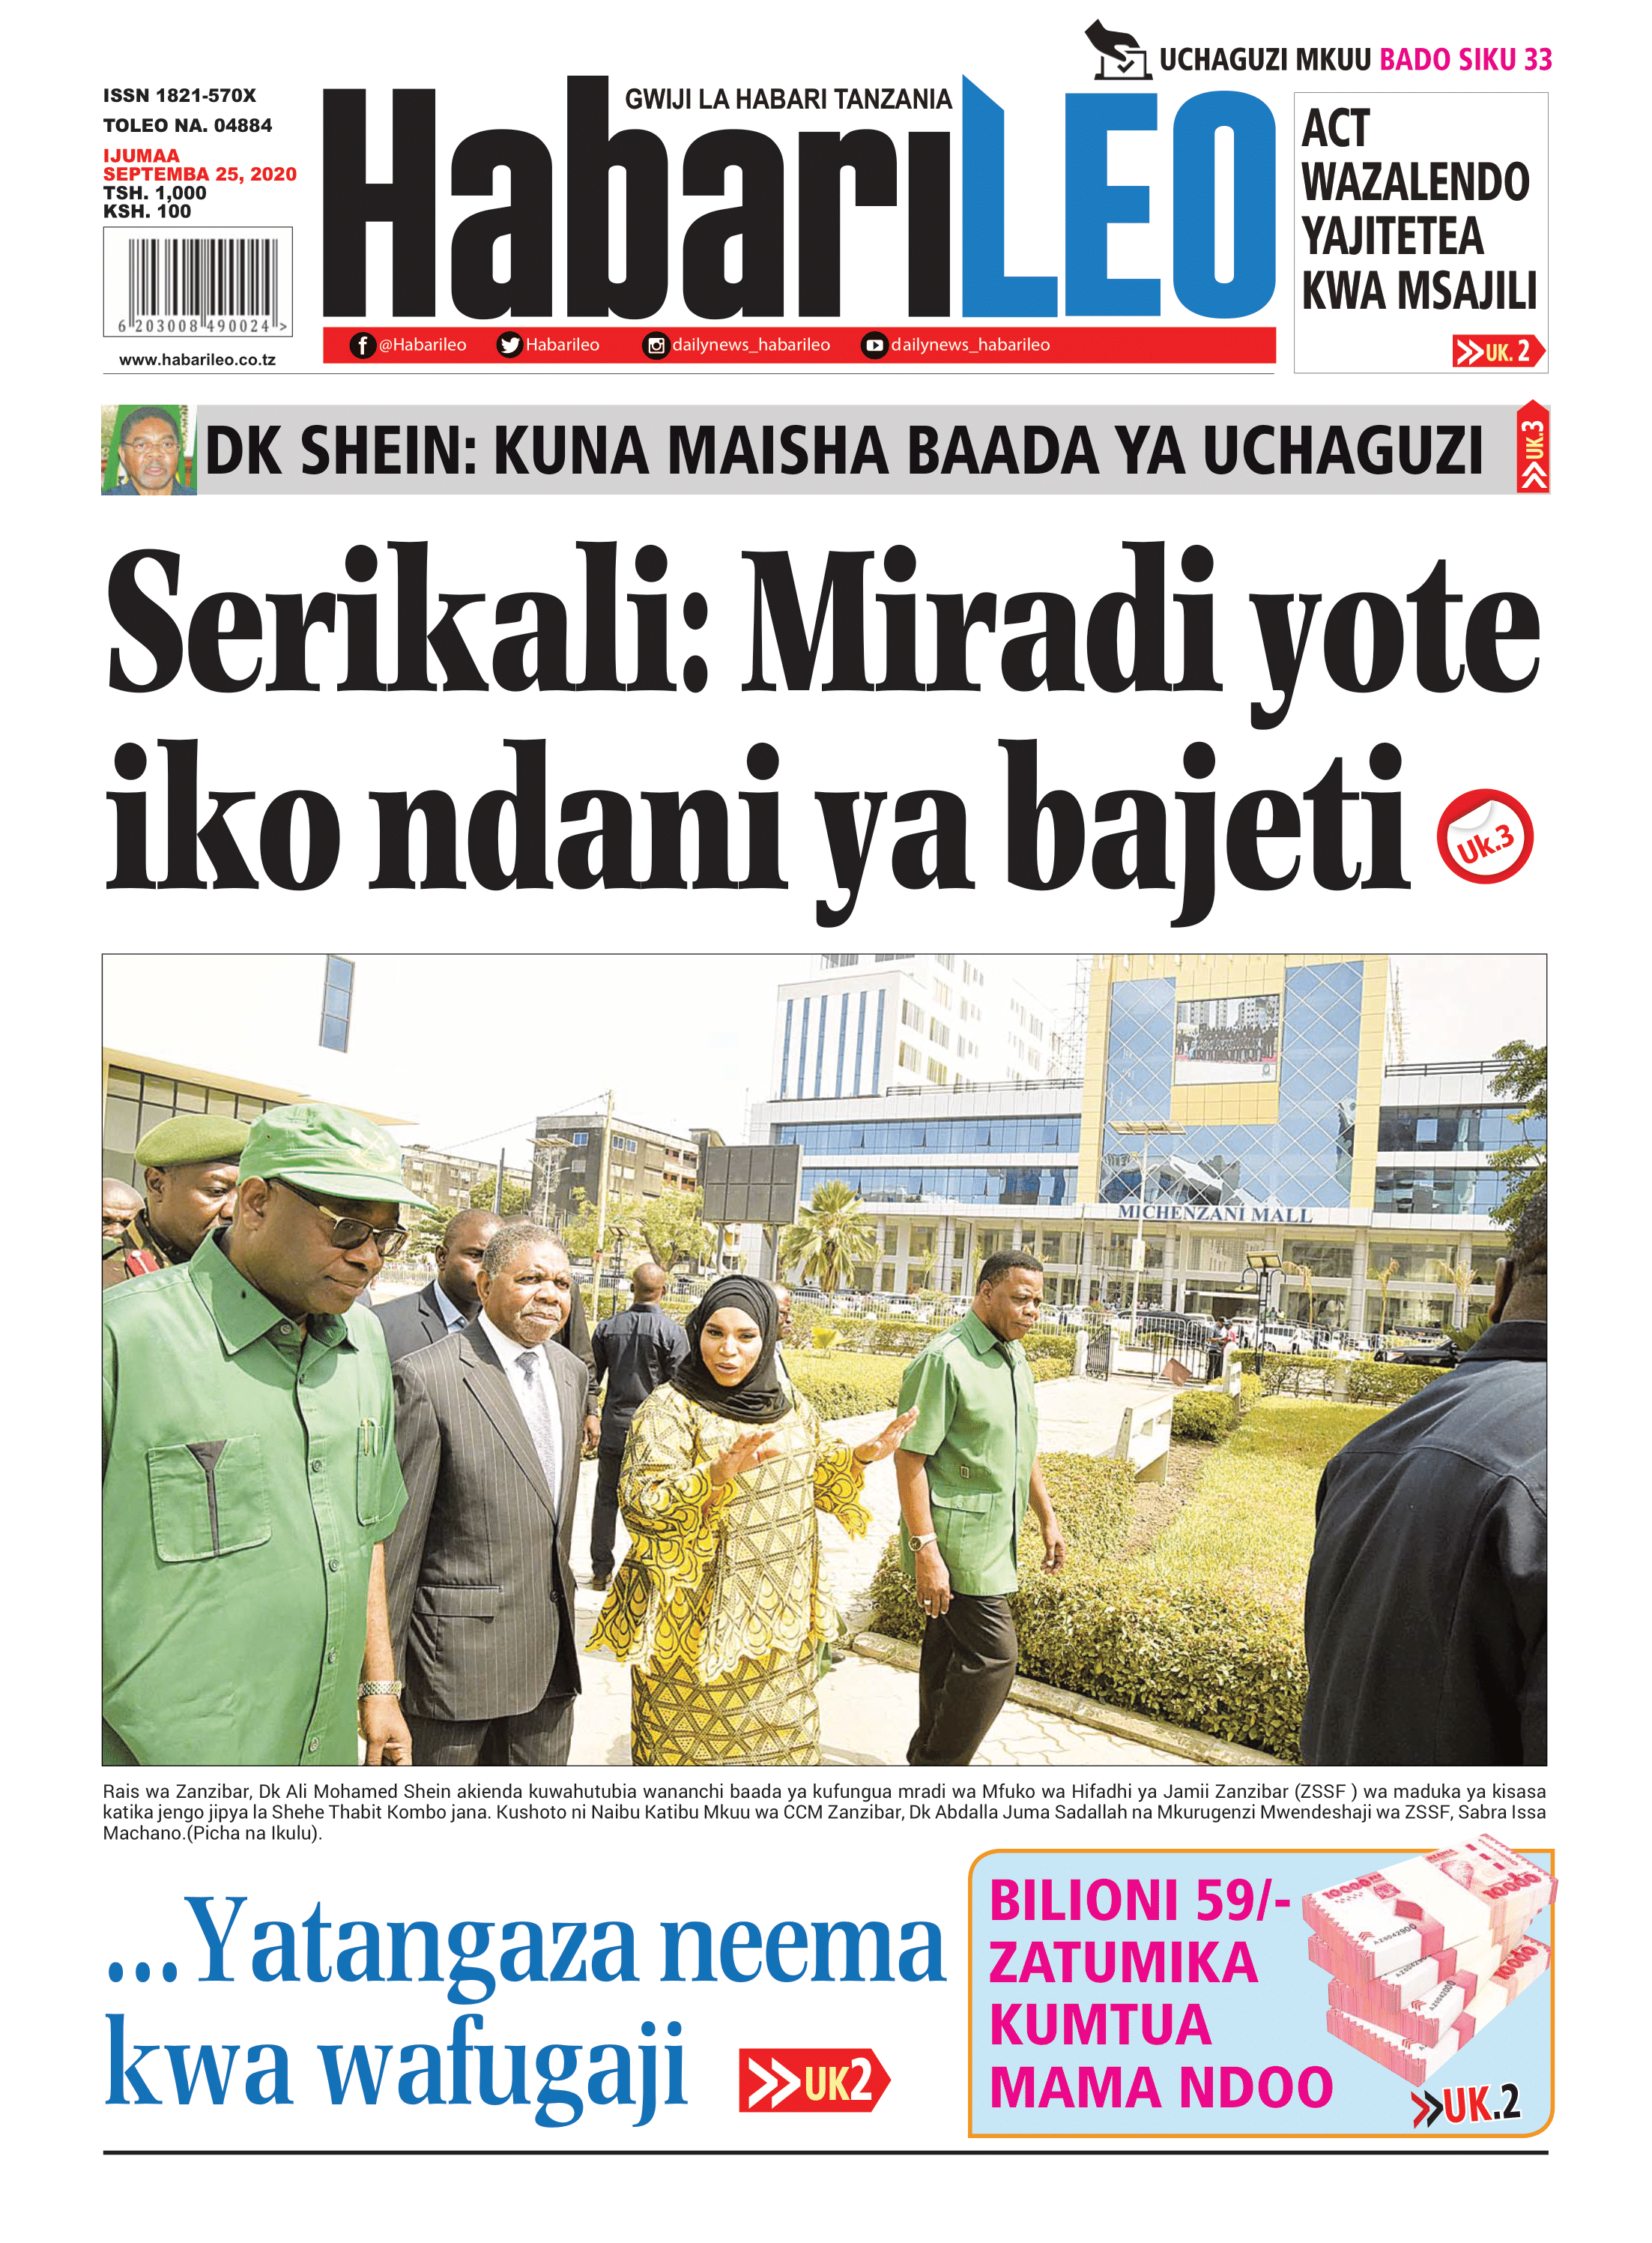 https://apps.tsn.go.tz/public/epaper/cover/d67221bca6e0e1ab874cd61dec17fa68.png